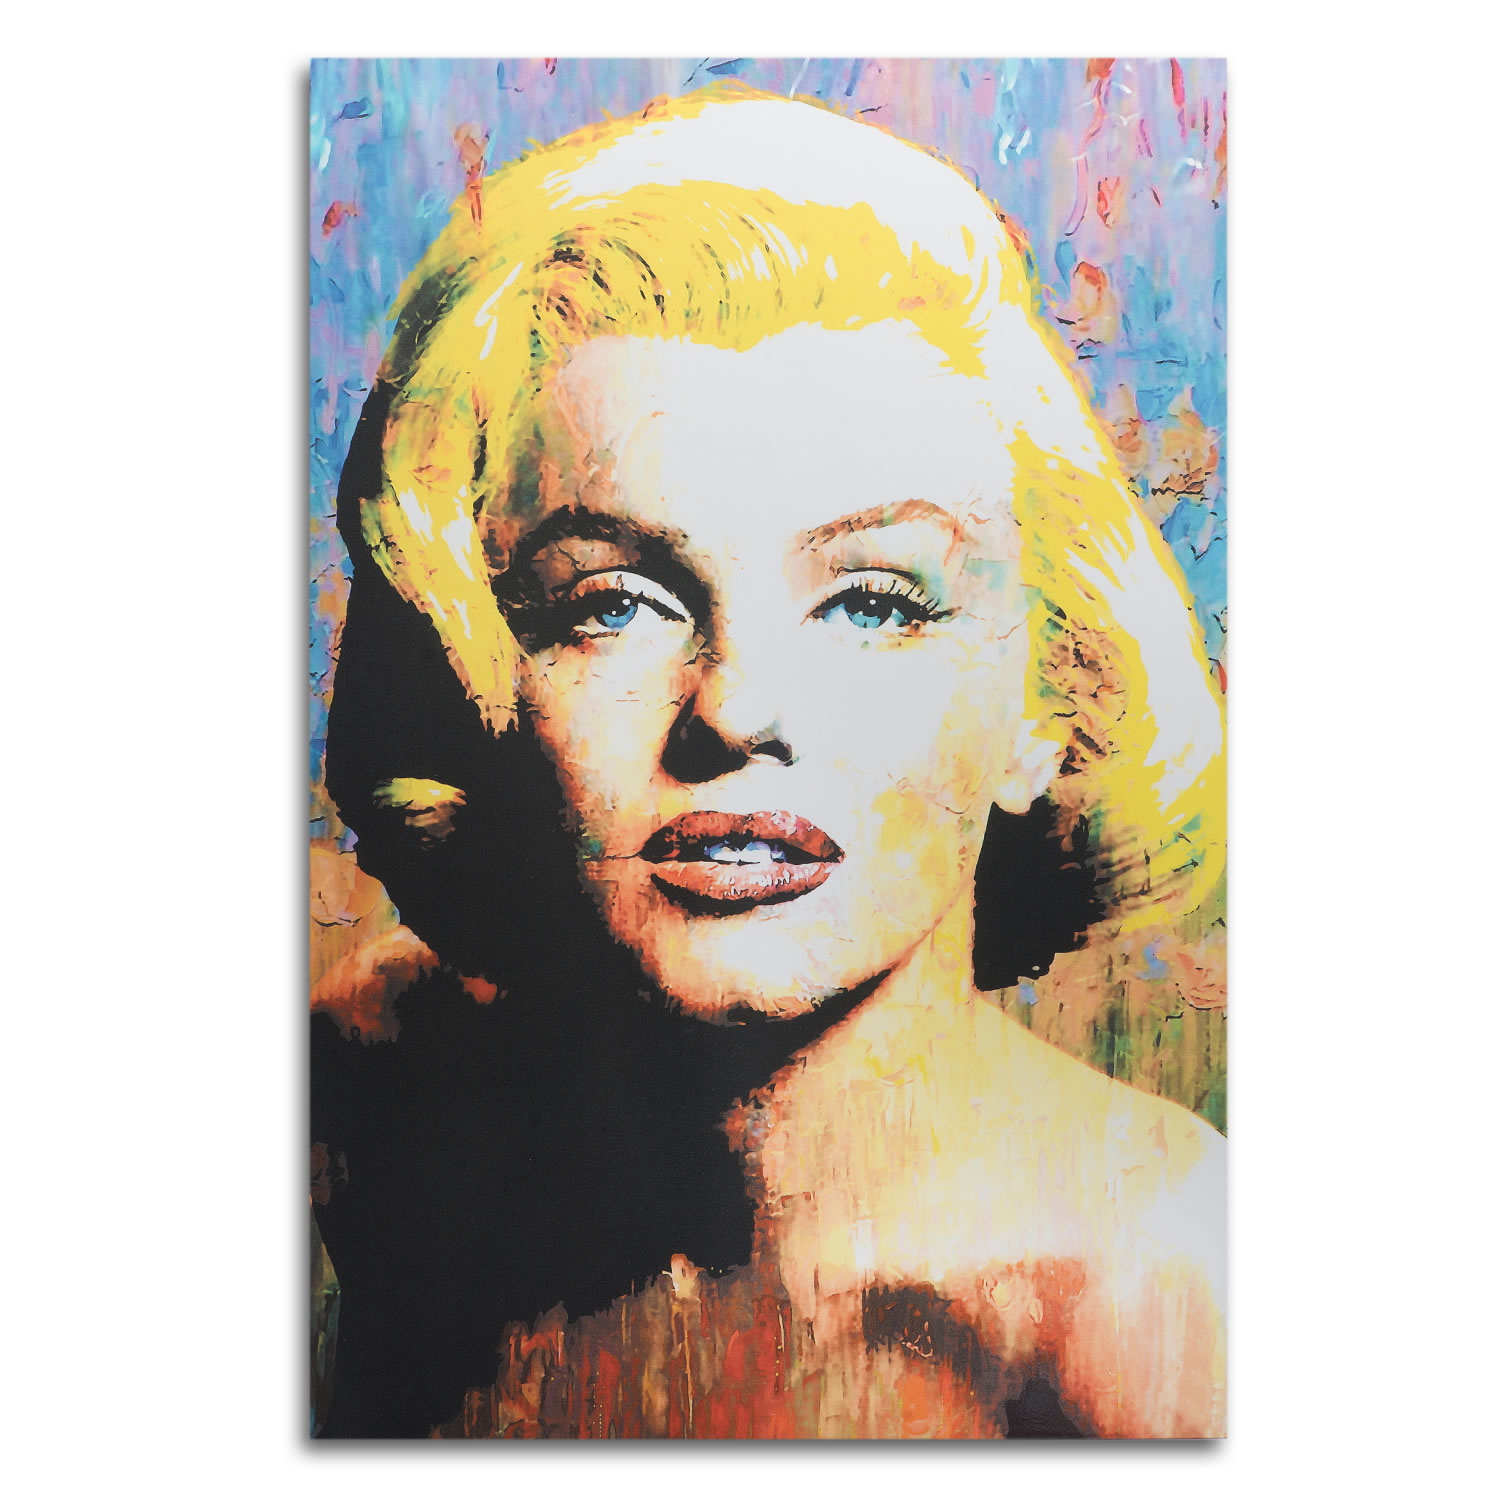 Marilyn Monroe Right To Twinkle | Pop Art Painting by Mark Lewis, Signed & Numbered Limited Edition